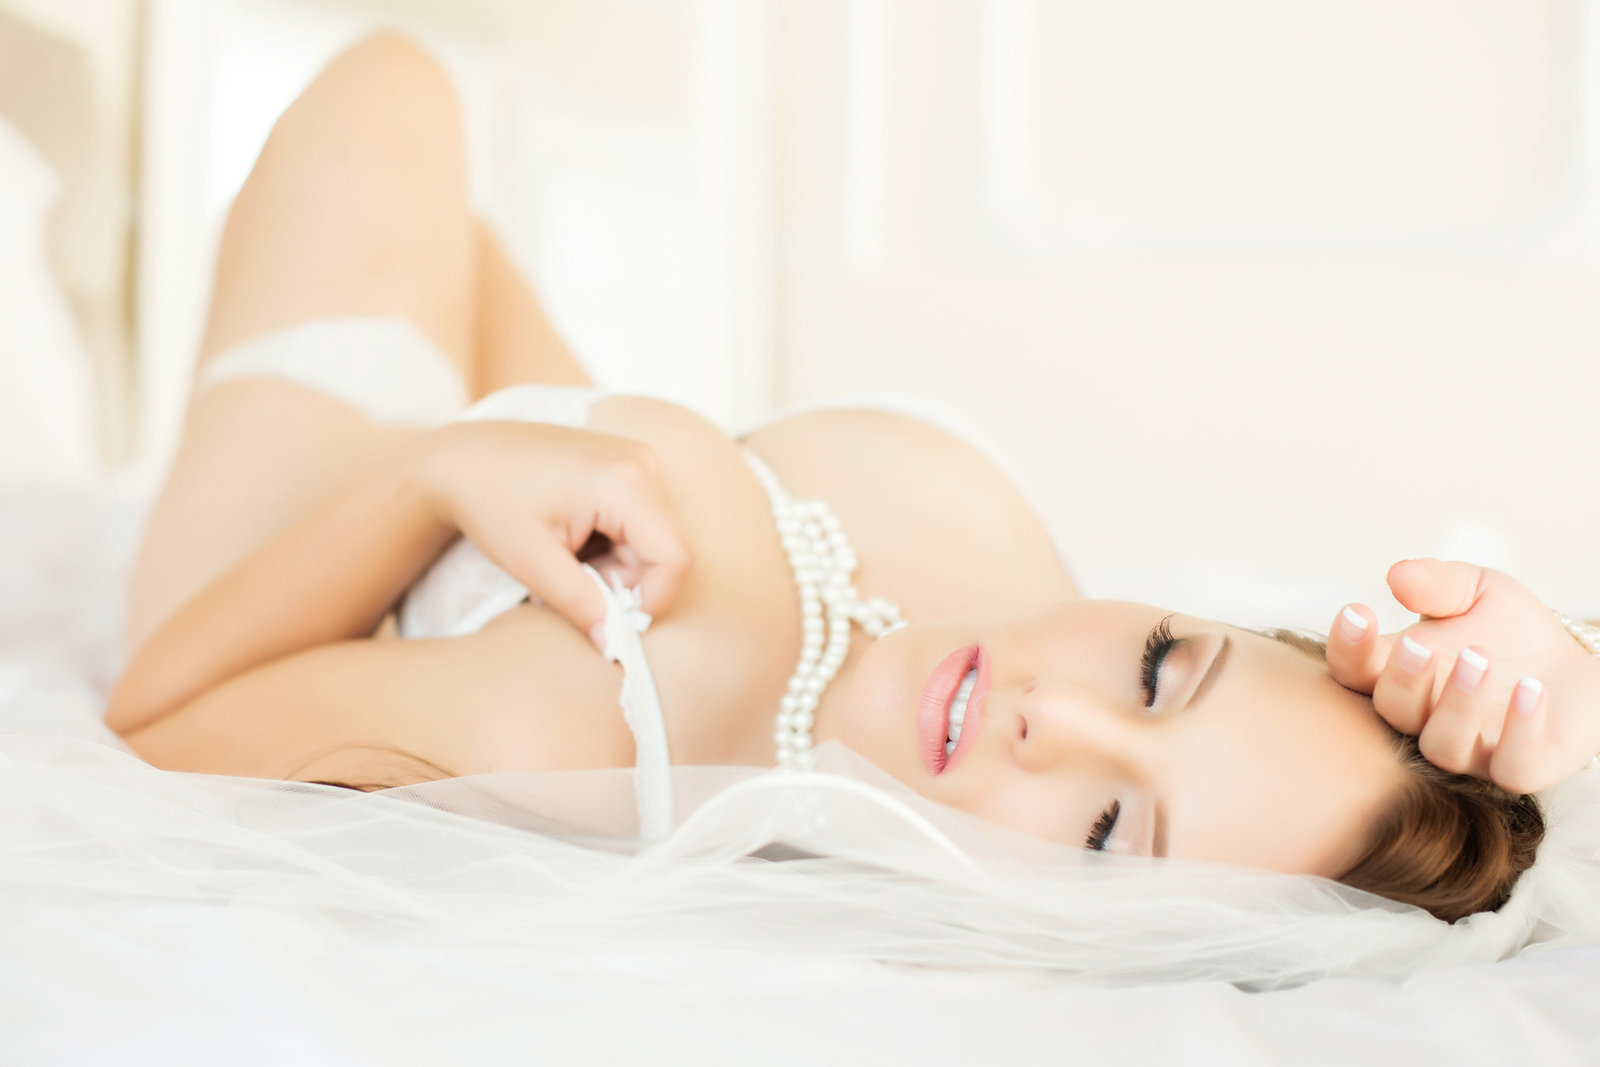 bridal lace pearls boudoir, scottsdale boudoir photography